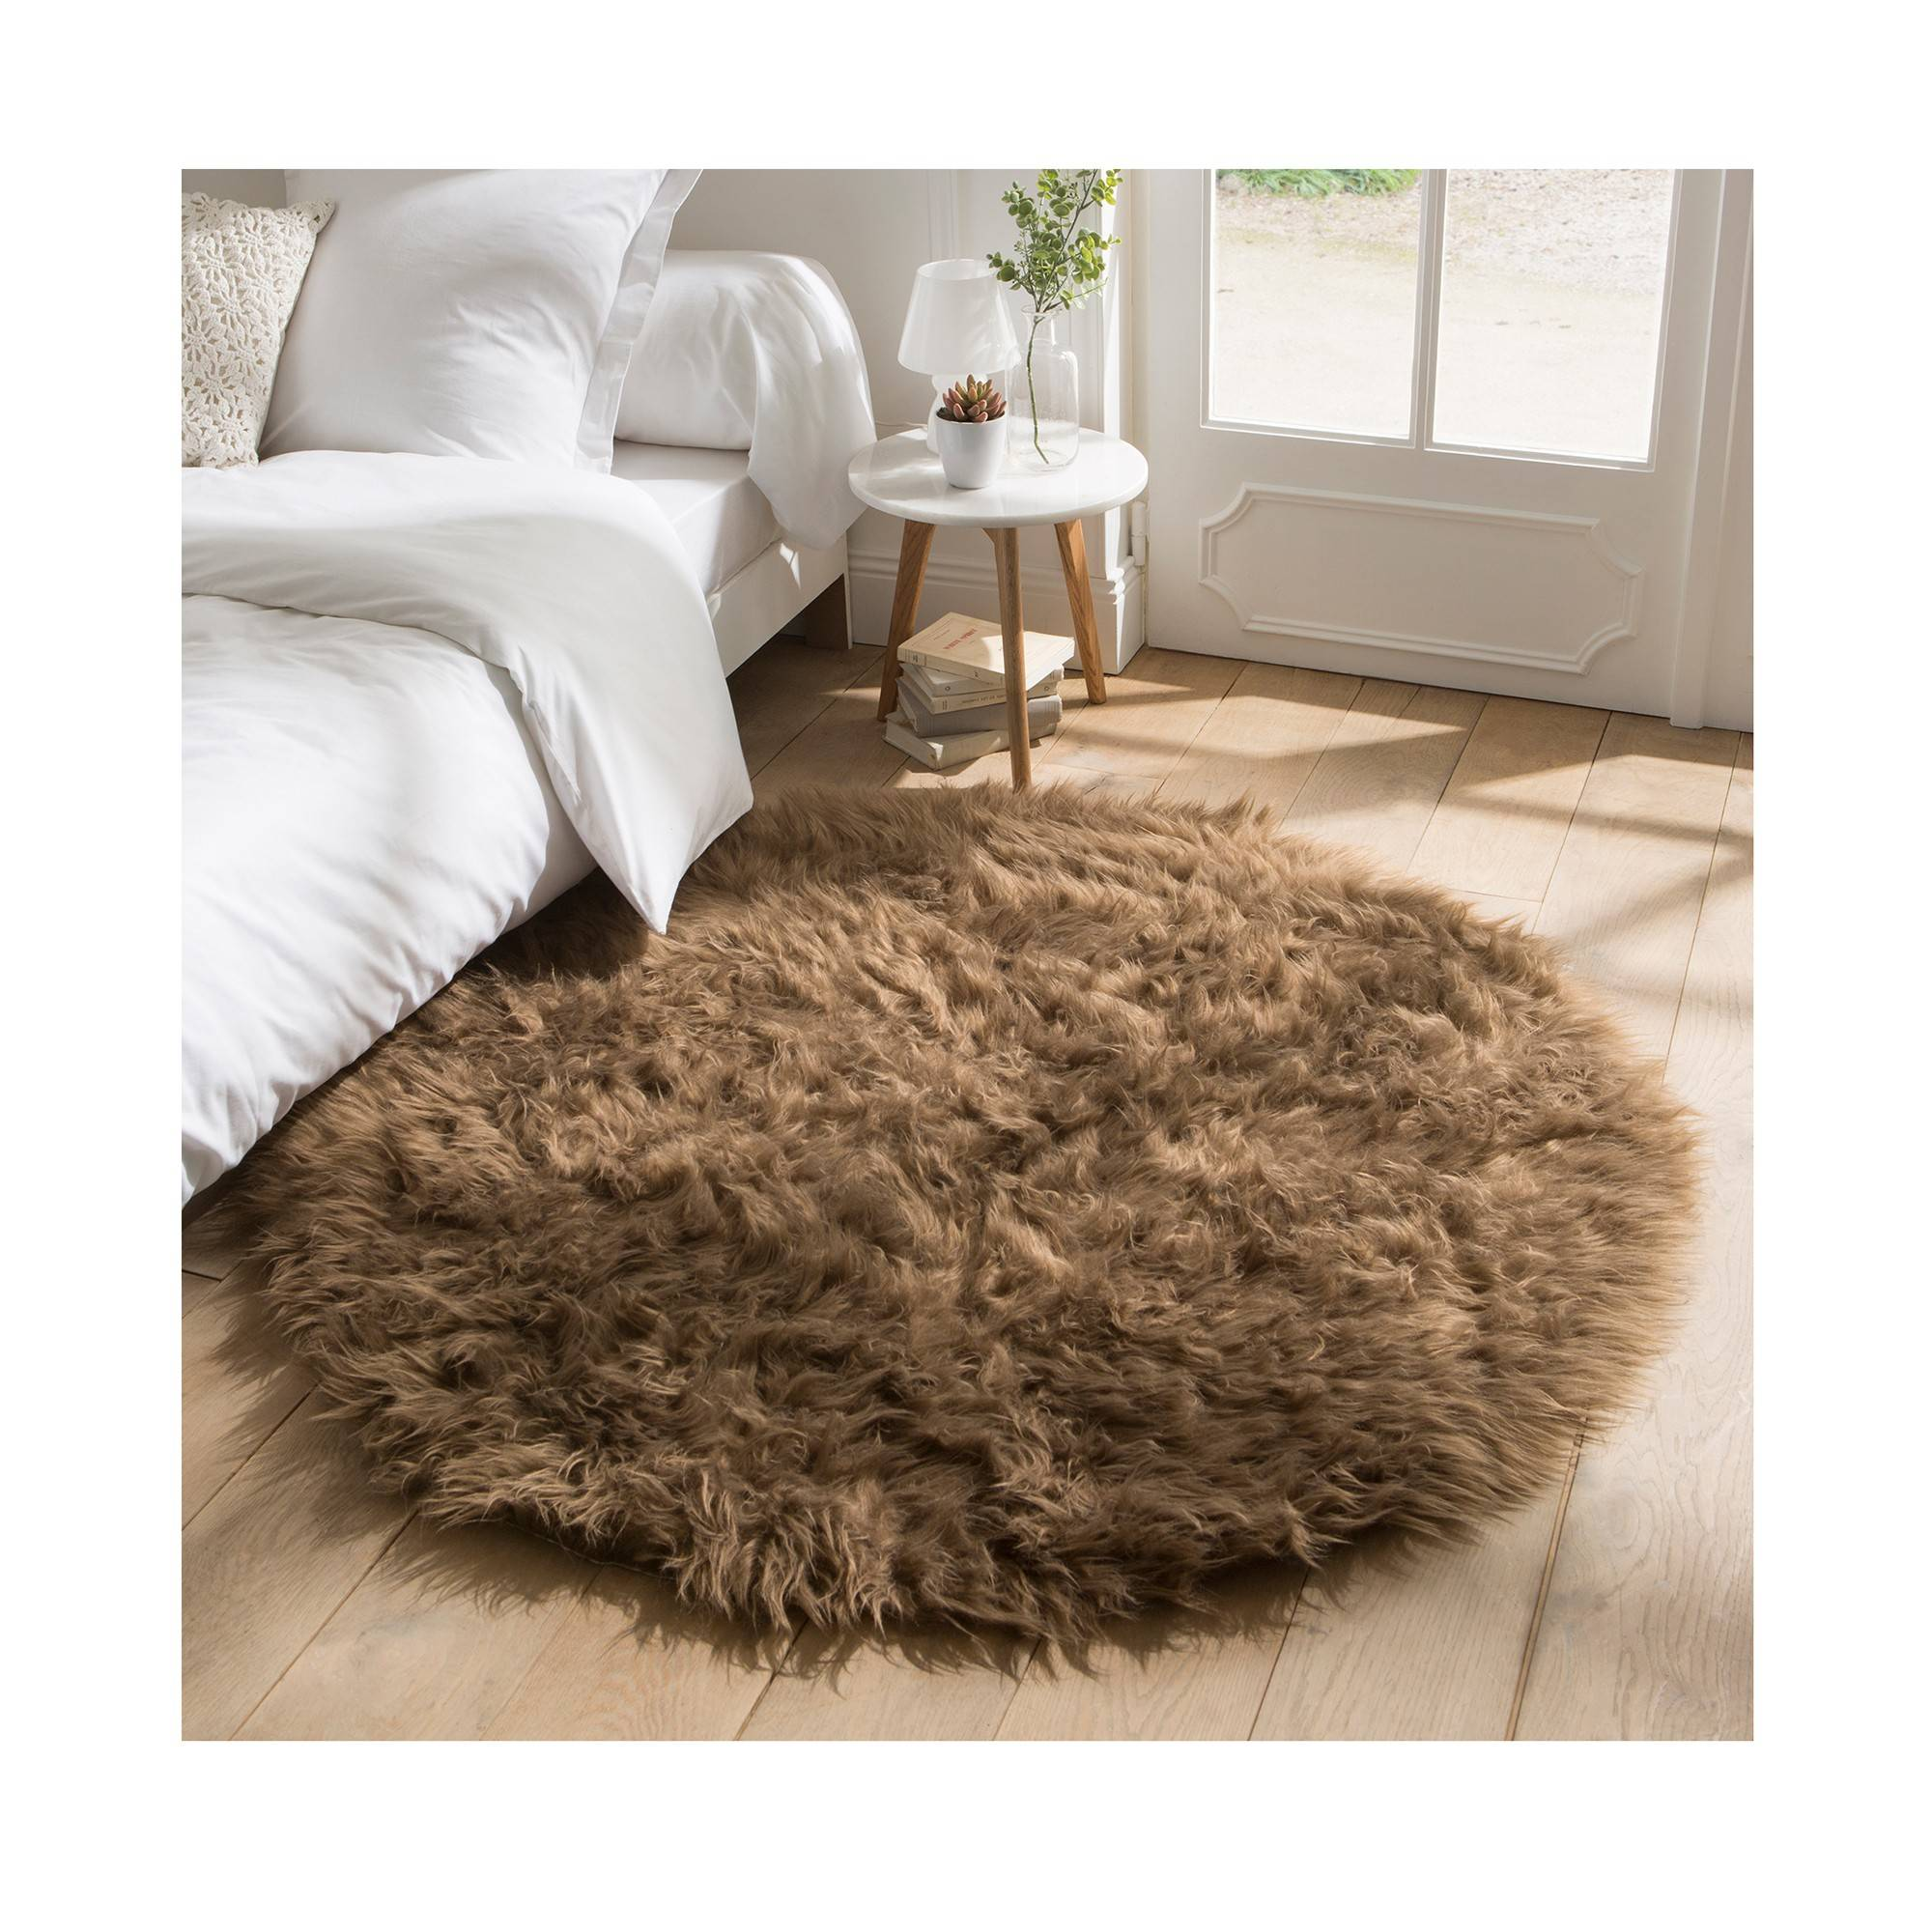 Tapis rond poils longs - taupe - Blancheporte